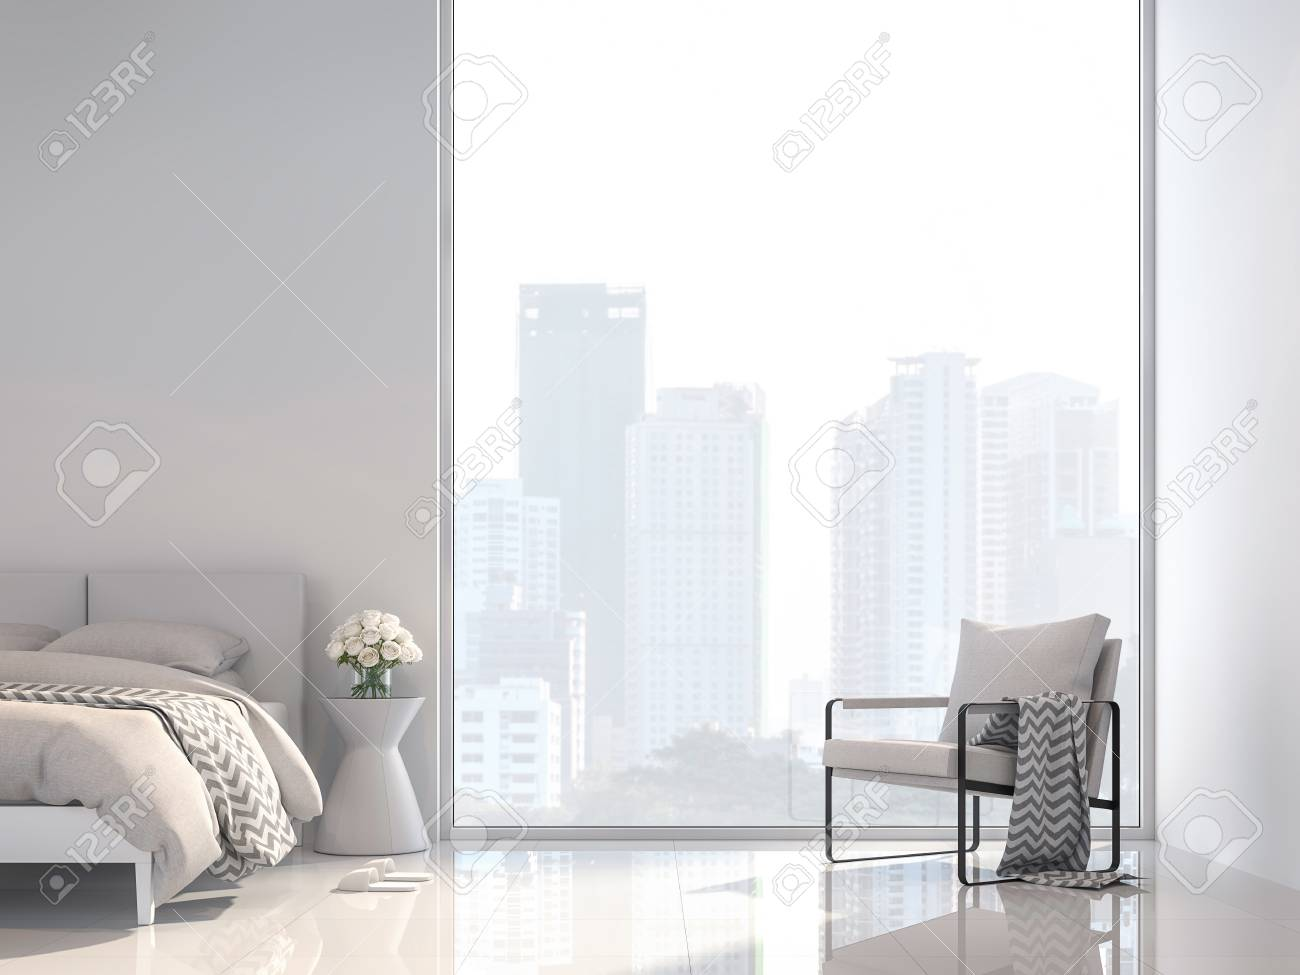 Minimal white bedroom with city view 3d render, Decorate with white fabric furniture ,The room has large windows,Sunlight shines into the room. - 109610421